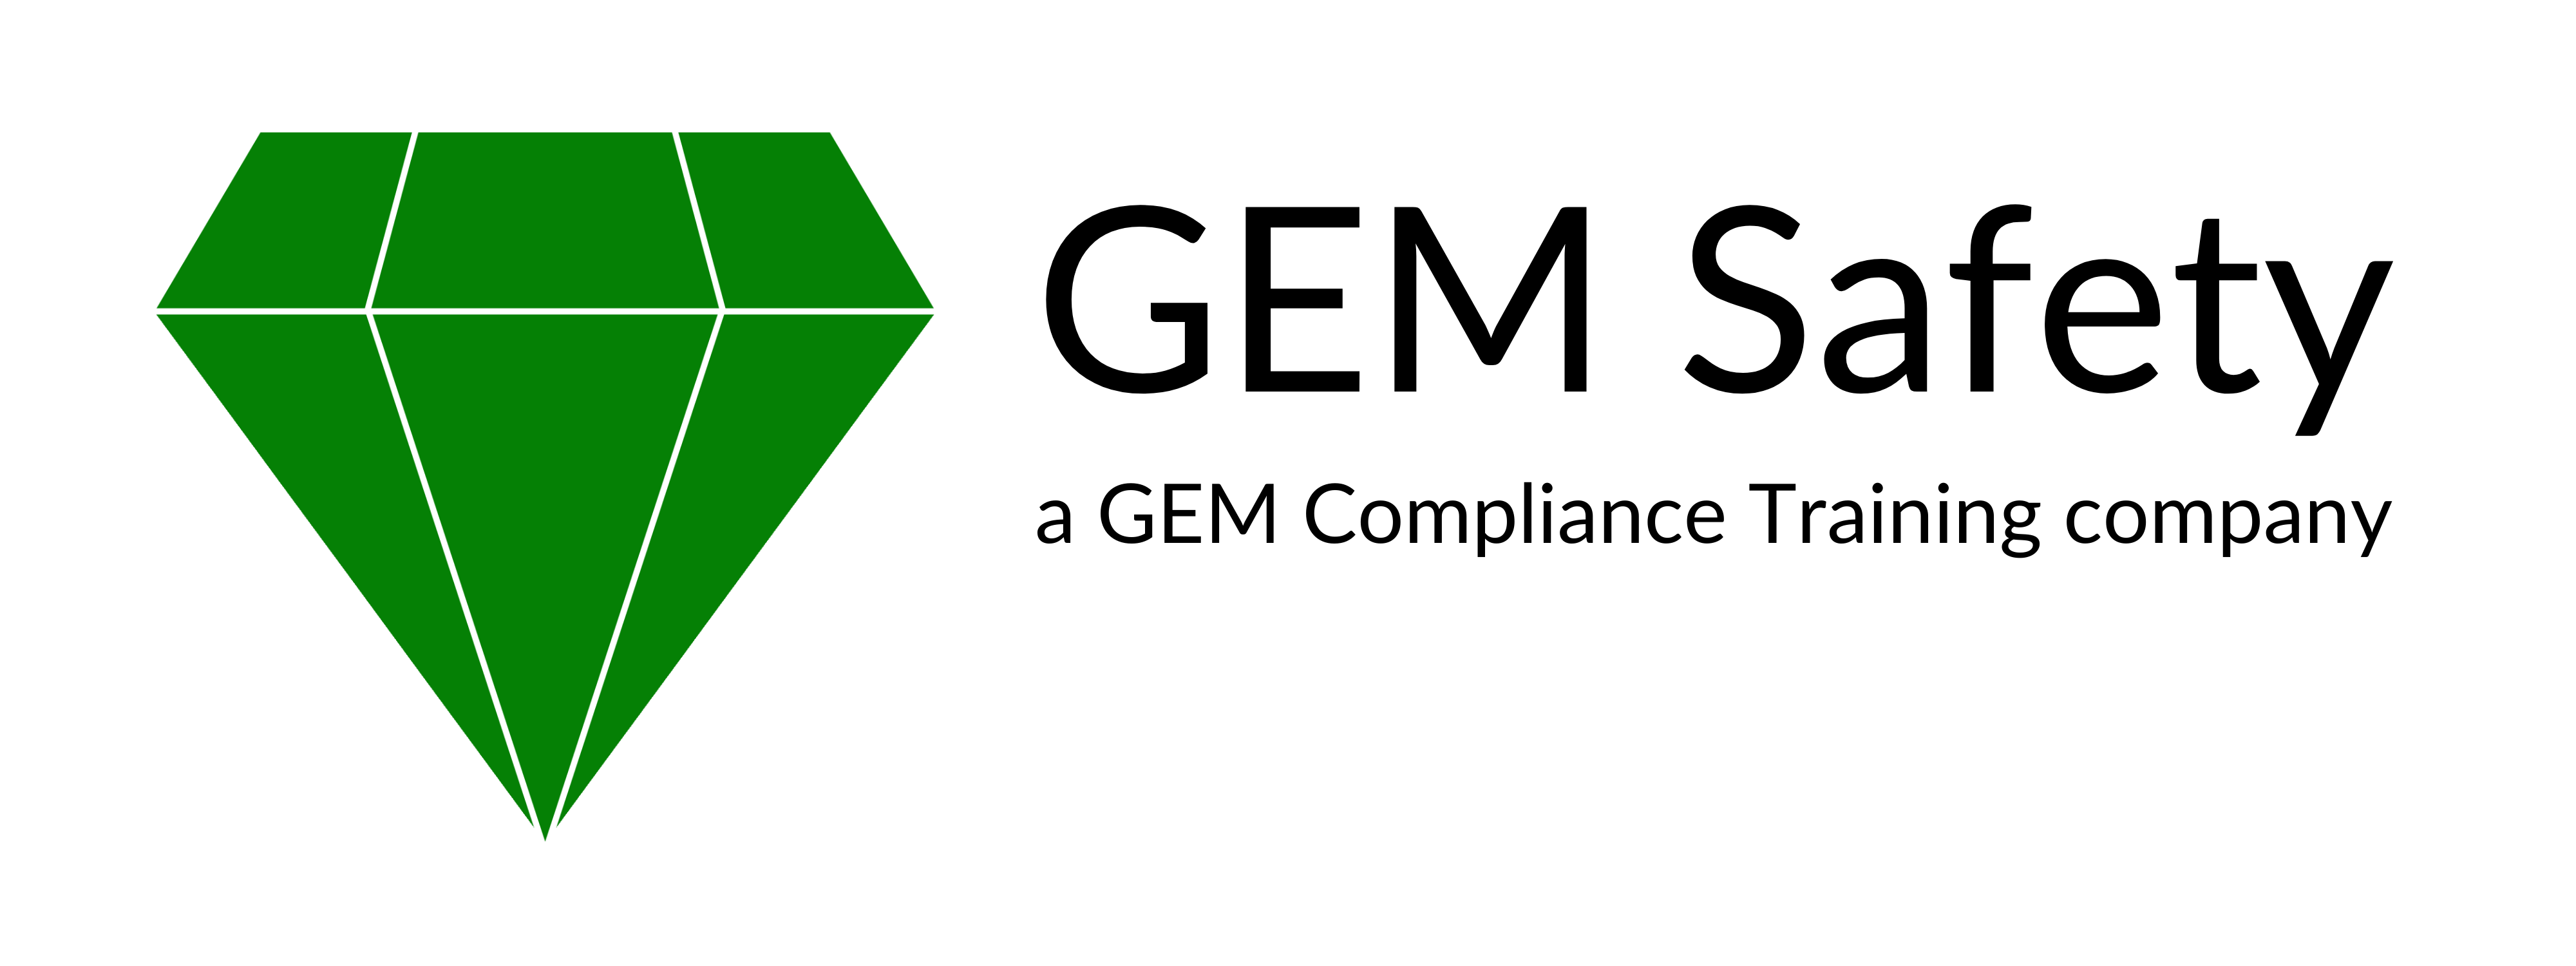 GEM Safety